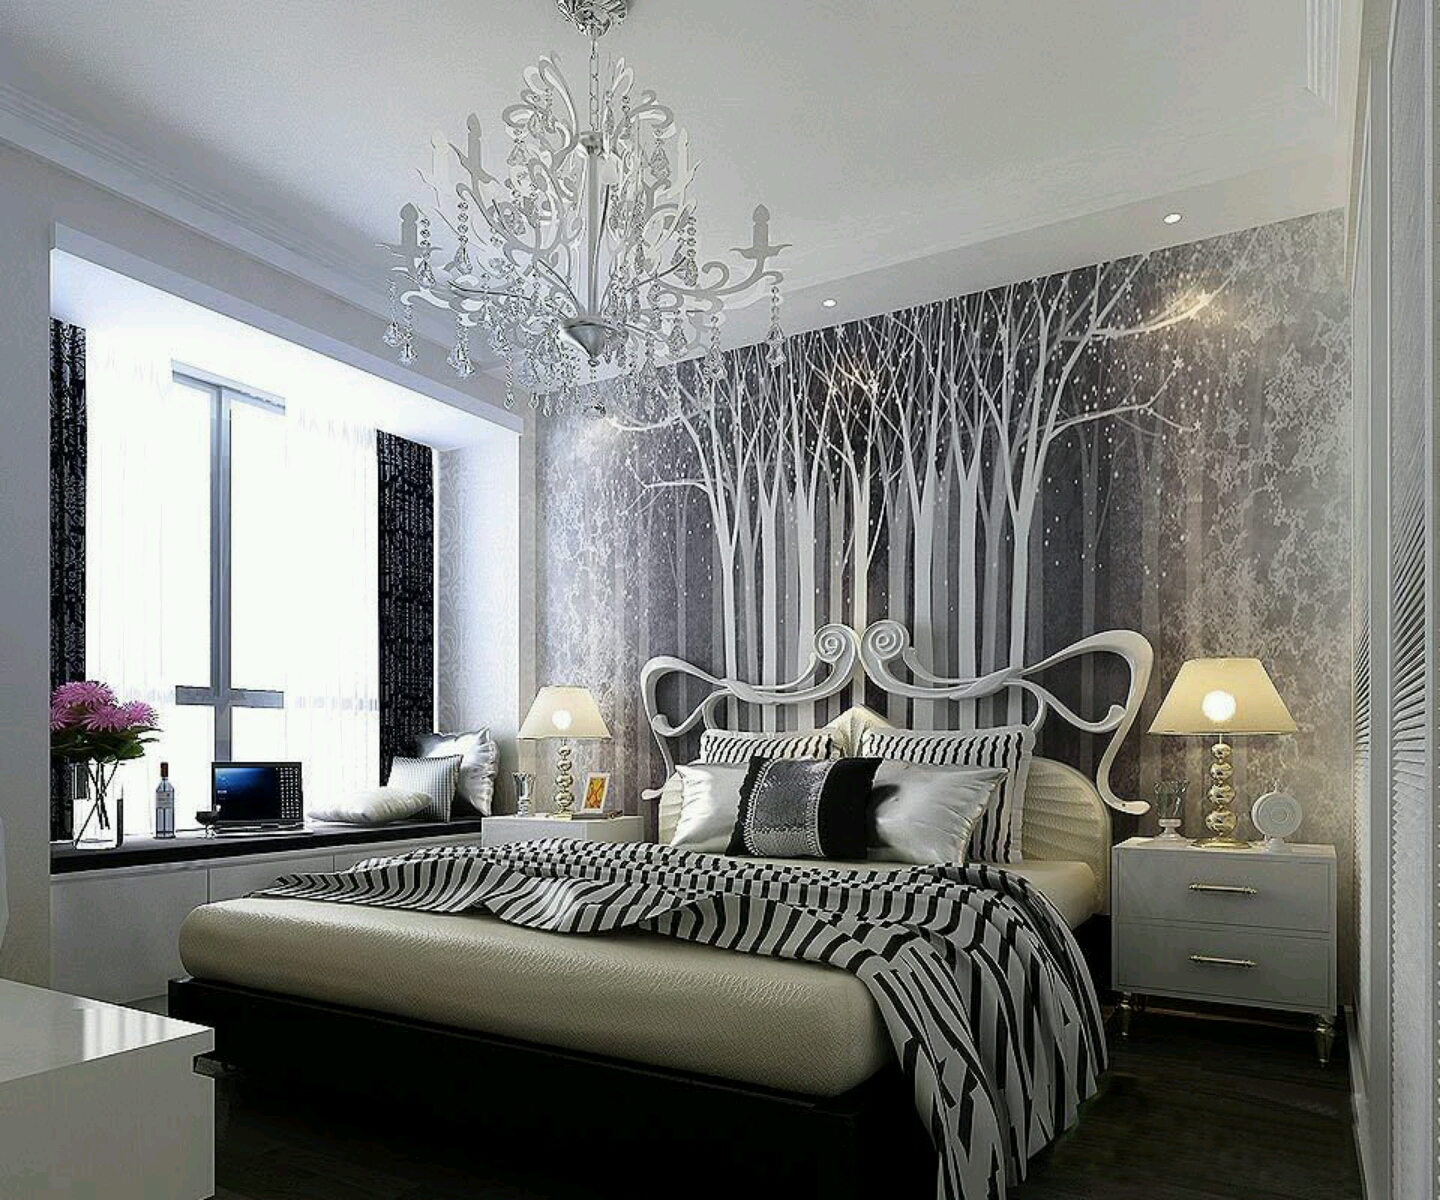 Room Decorating Ideas Tumblr | Wallpress 1080p HD Desktop